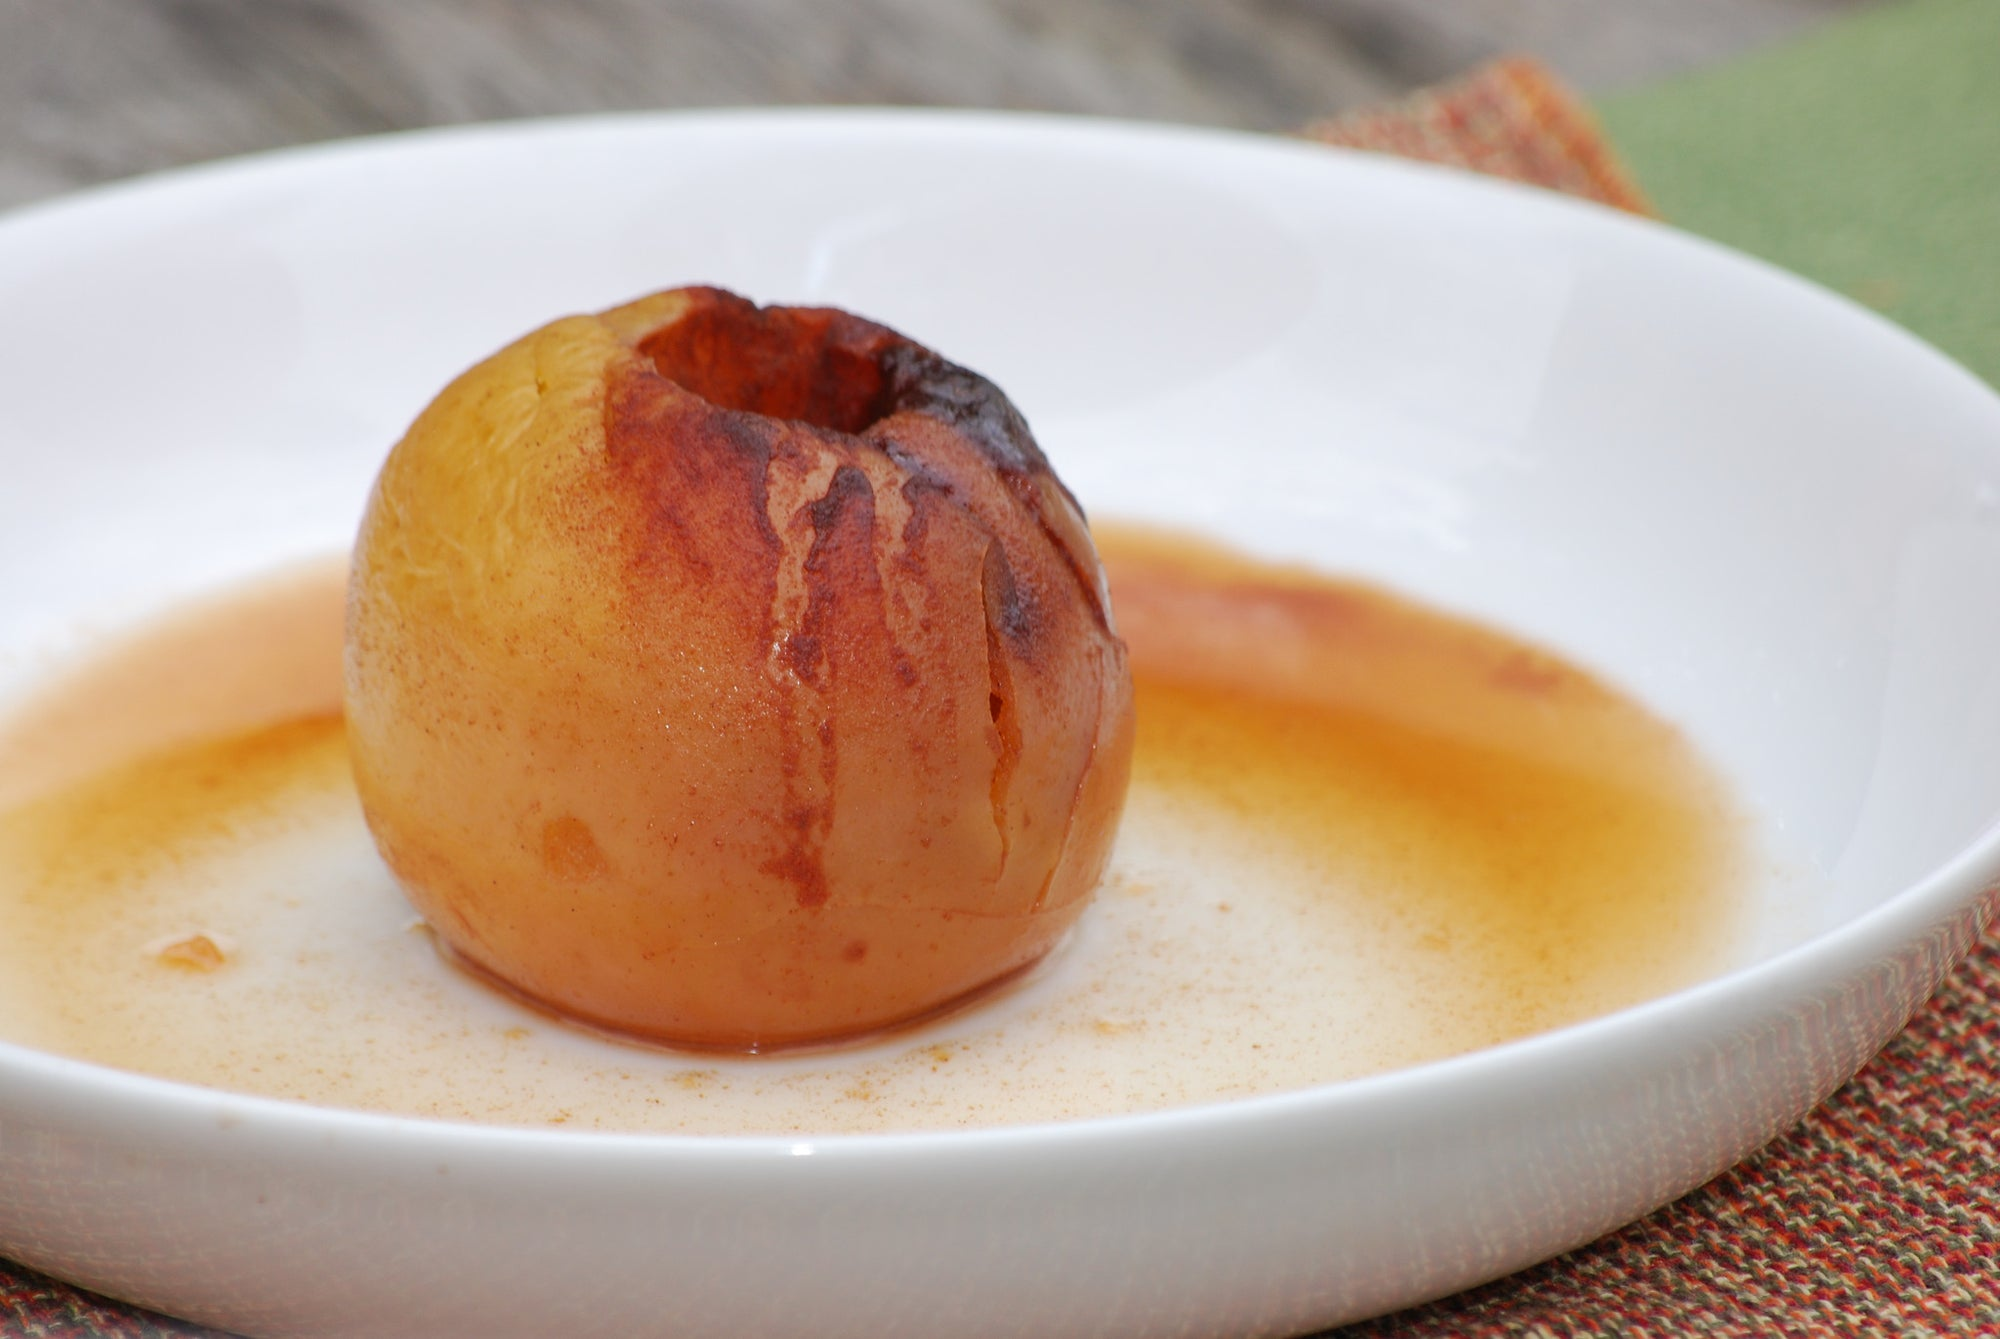 Oven Baked Organic Apple with Cinnamon